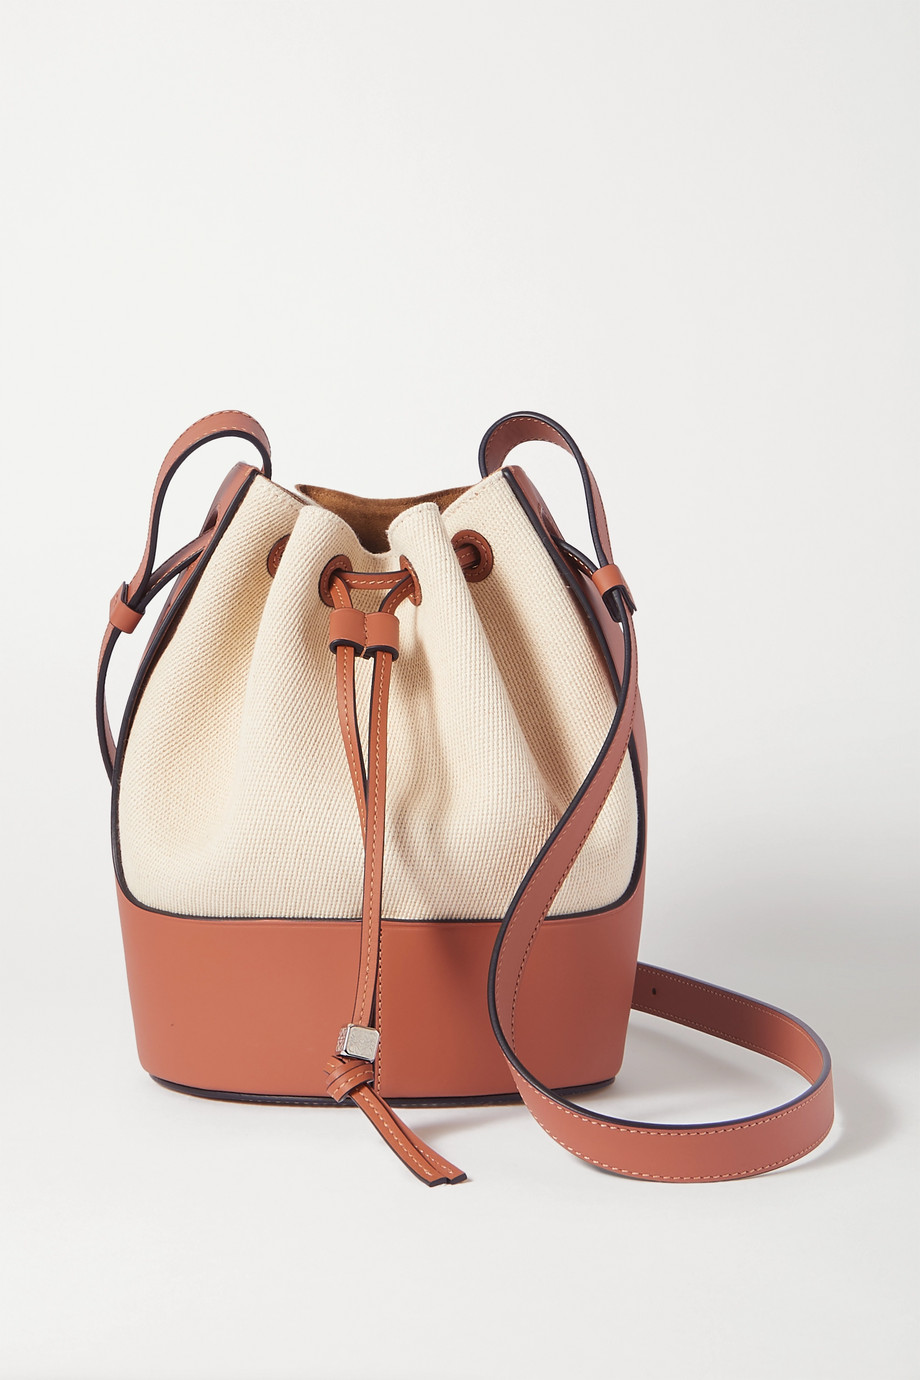 Loewe Balloon small cotton-canvas and leather bucket bag